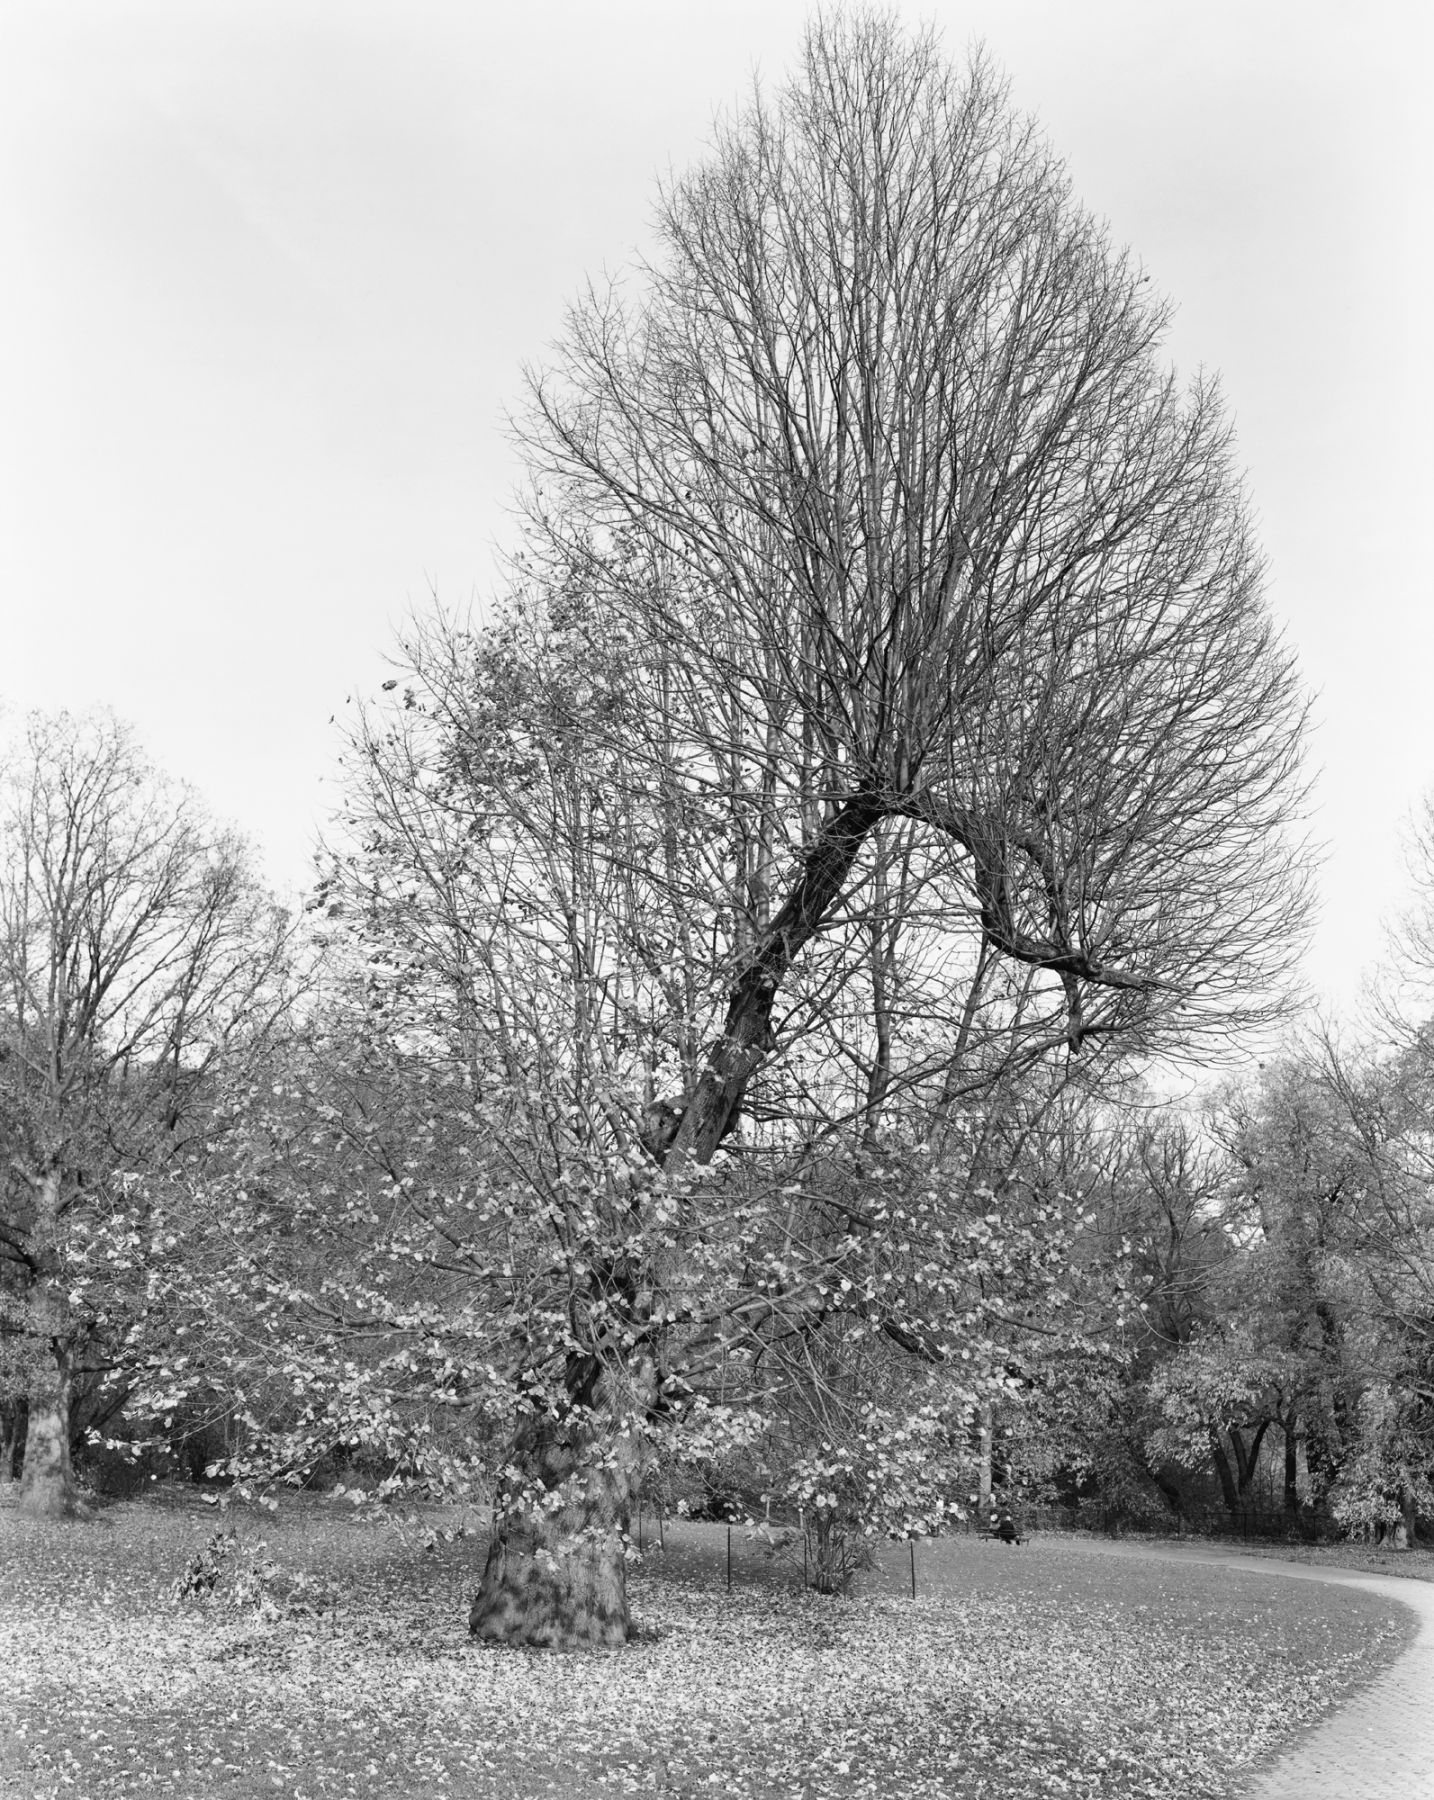 Silver Linden, Prospect Park, Brooklyn, from the series New York Arbor, 2011. Gelatin silver print, 40 x 30 or 68 x 54 inches.